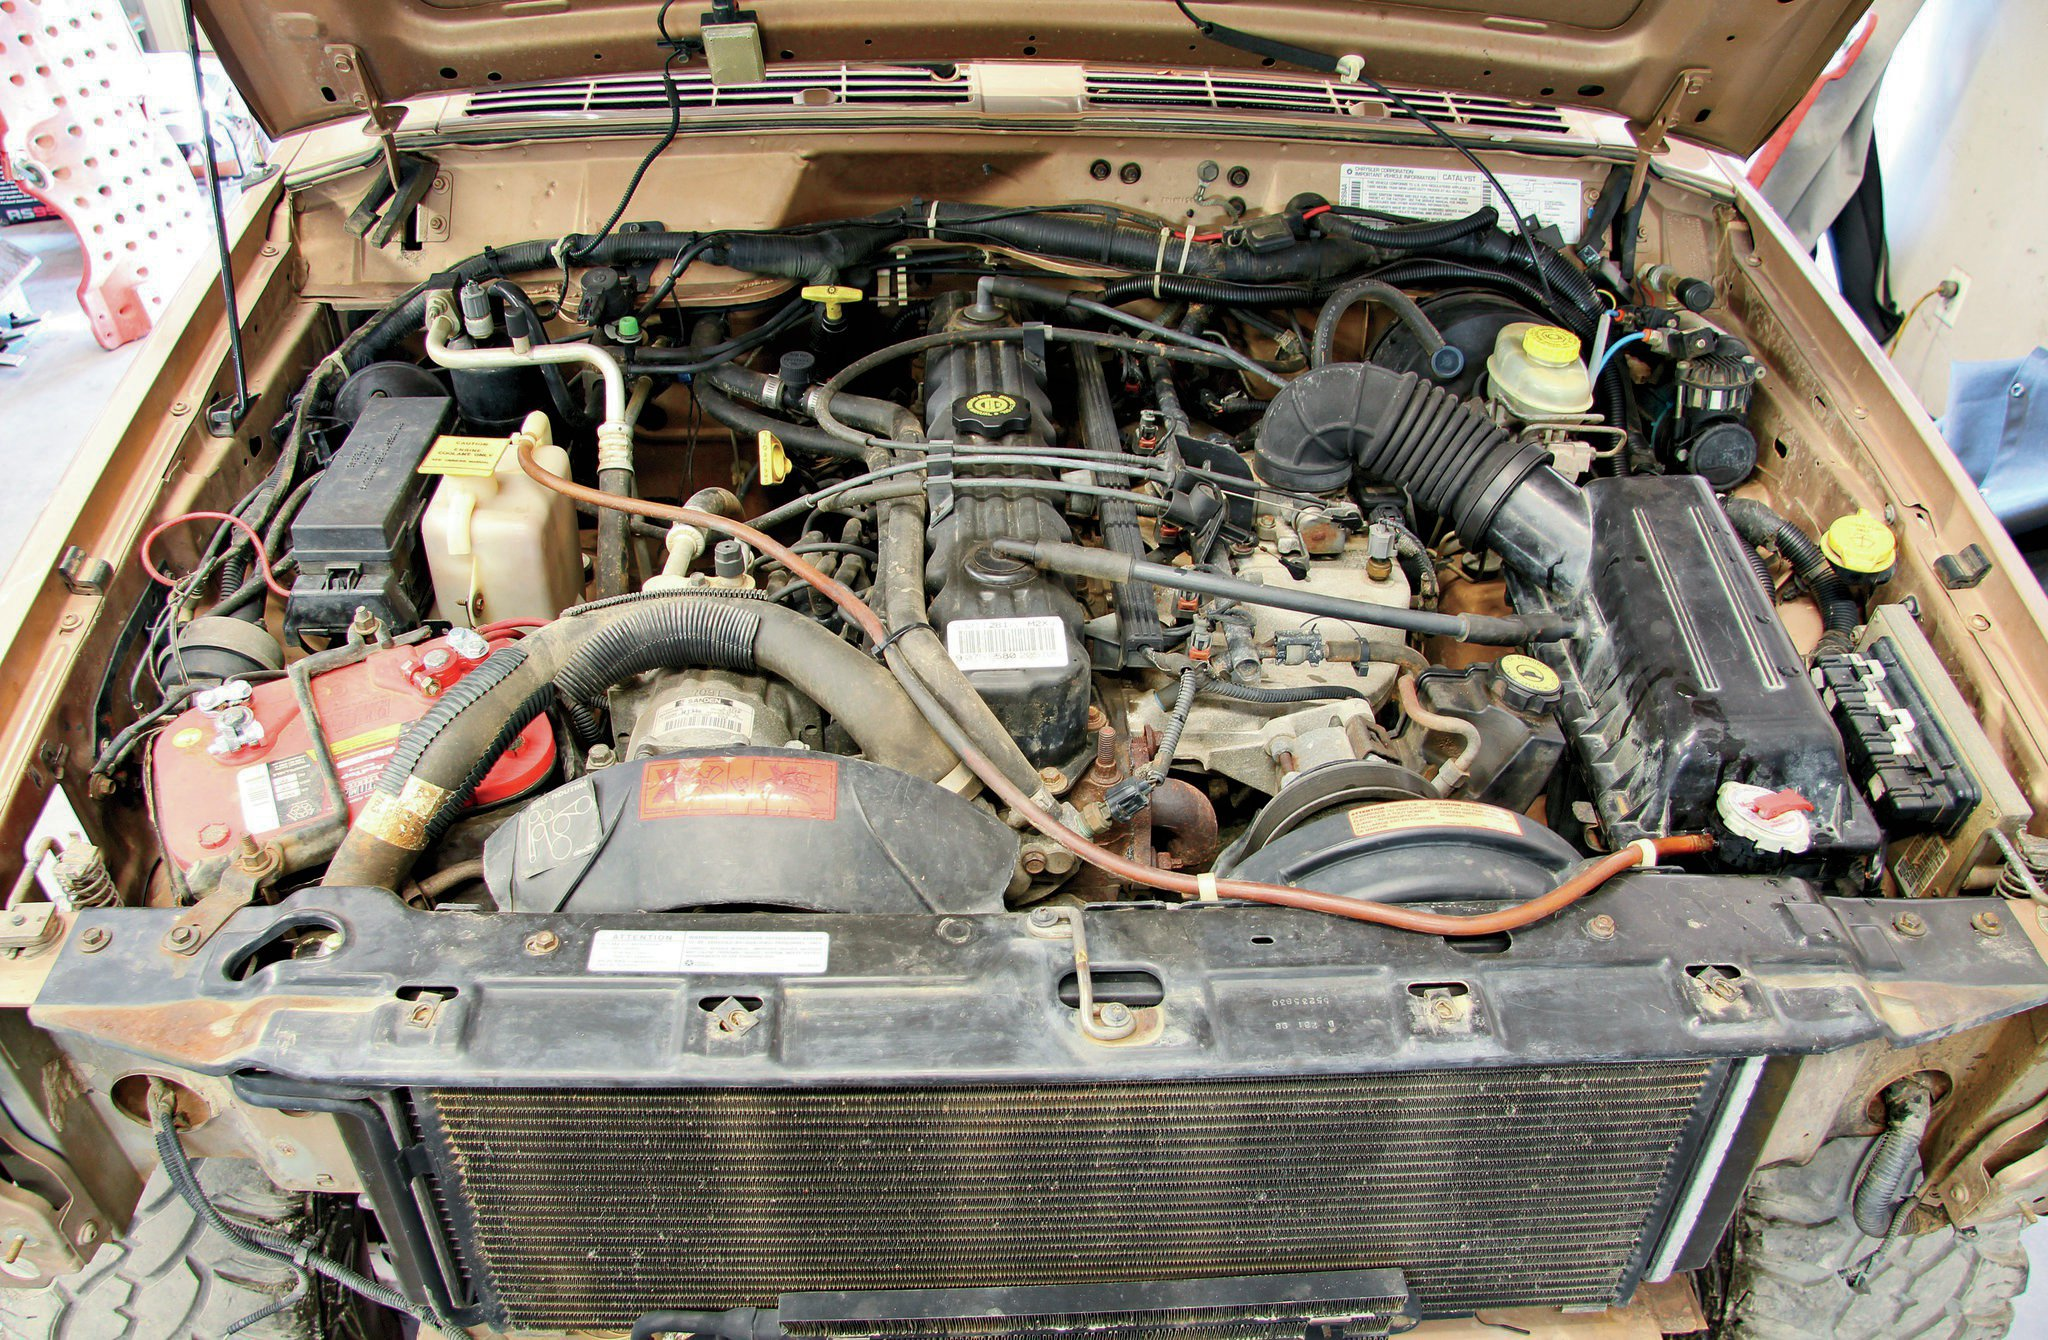 Under the hood rests the stock 4.0L inline-six engine. The Optima RedTop battery has some age on it but is holding a charge fine. We noticed that the XJ had an all-too-common exhaust manifold crack, but that will be a problem we will address in another installment.